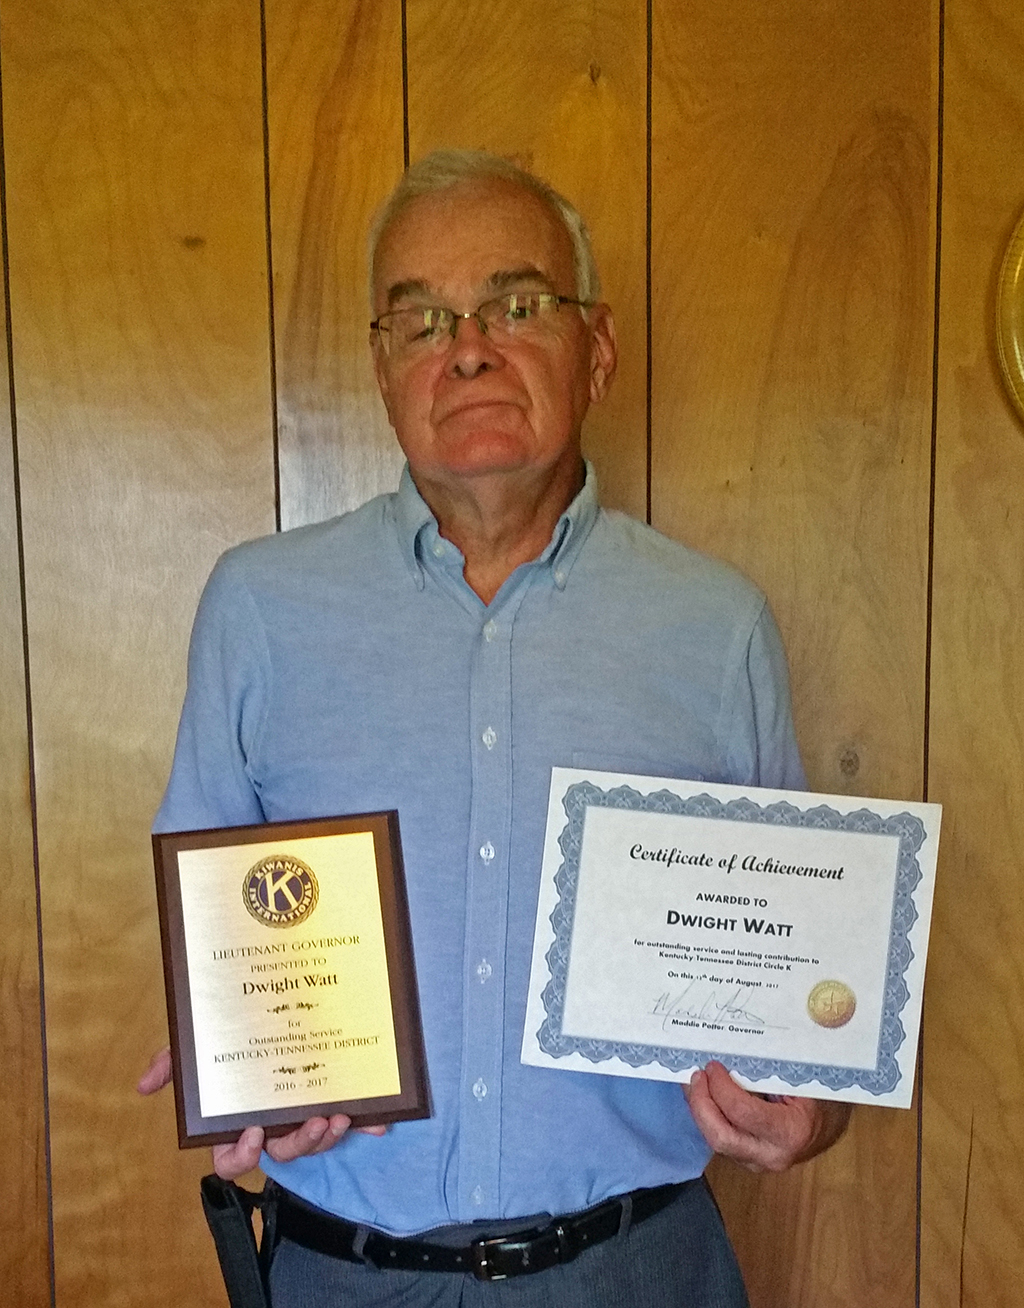 Dr. Dwight Watt shortly after receiving his awards for achievement for work with the Kentucky-Tennessee Regional Kiwanis Club Conference. The annual event was held for the 99th time this past summer. Louisville, Kentucky serves at the host site.